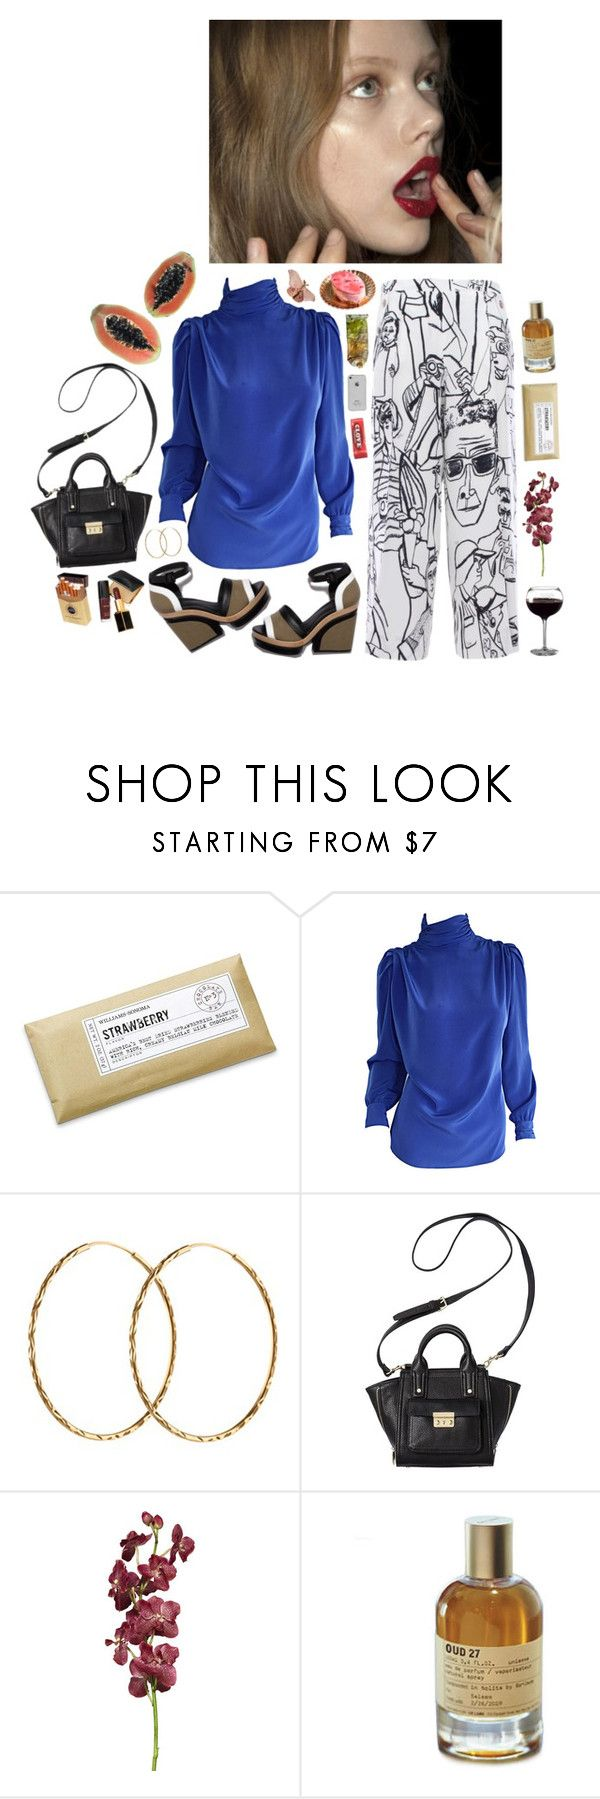 """""""7/100 - Death is the pulse in your eye on your very last breath"""" by pentax ❤ liked on Polyvore featuring Williams-Sonoma, Emilio Pucci, St. John, Pierre Hardy, Pernille Corydon, Tom Ford, 3.1 Phillip Lim, duty free, OKA and Le Labo"""